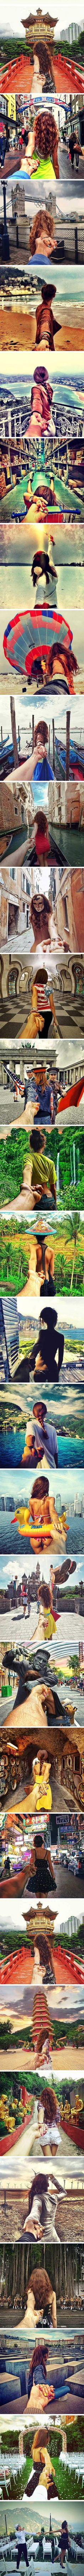 Photographers girlfriend leads him around the world....